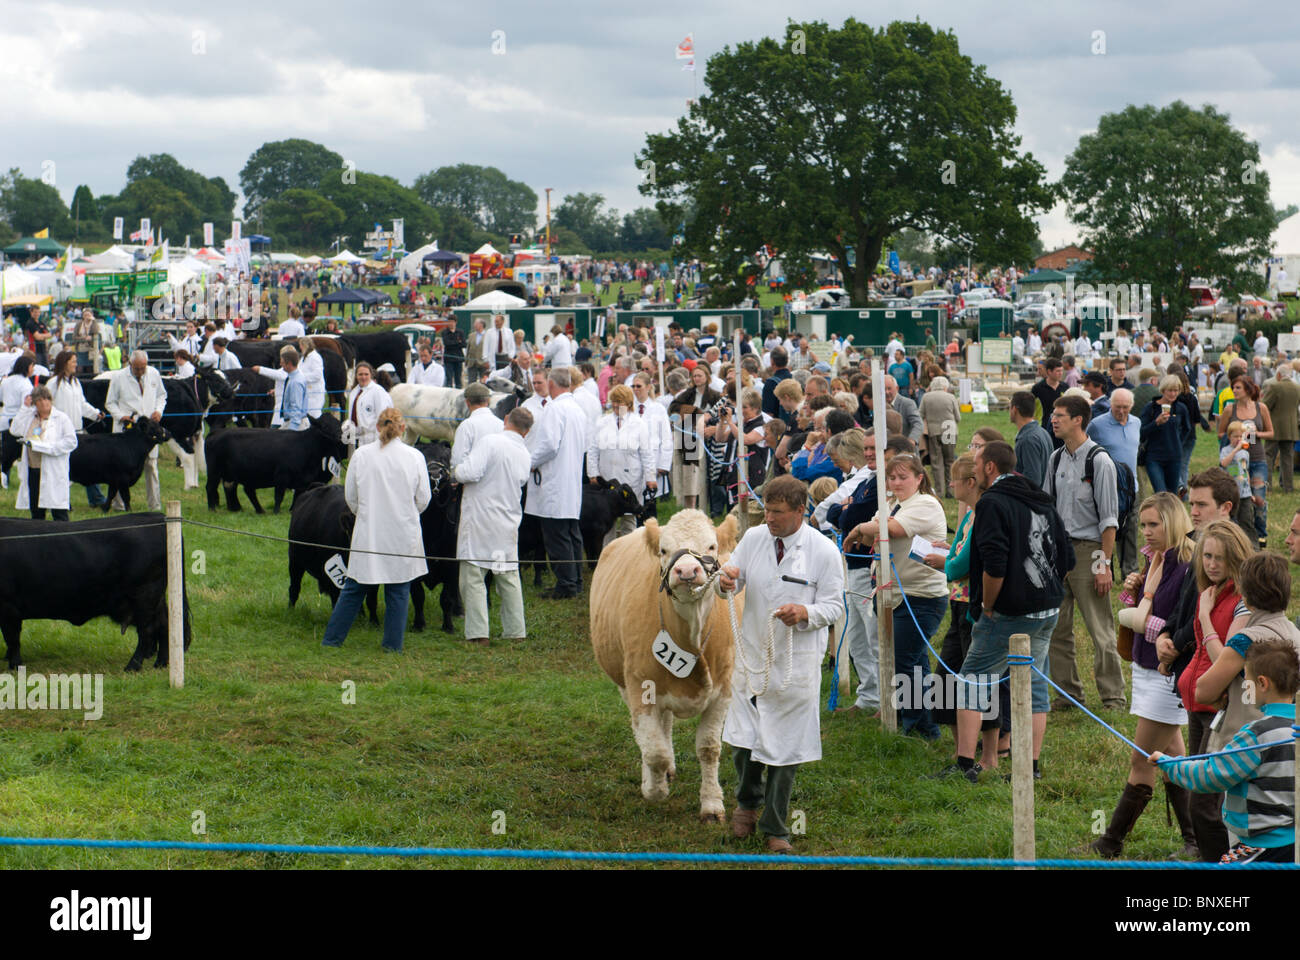 General view of showground at a country show in Mid Devon - Stock Image